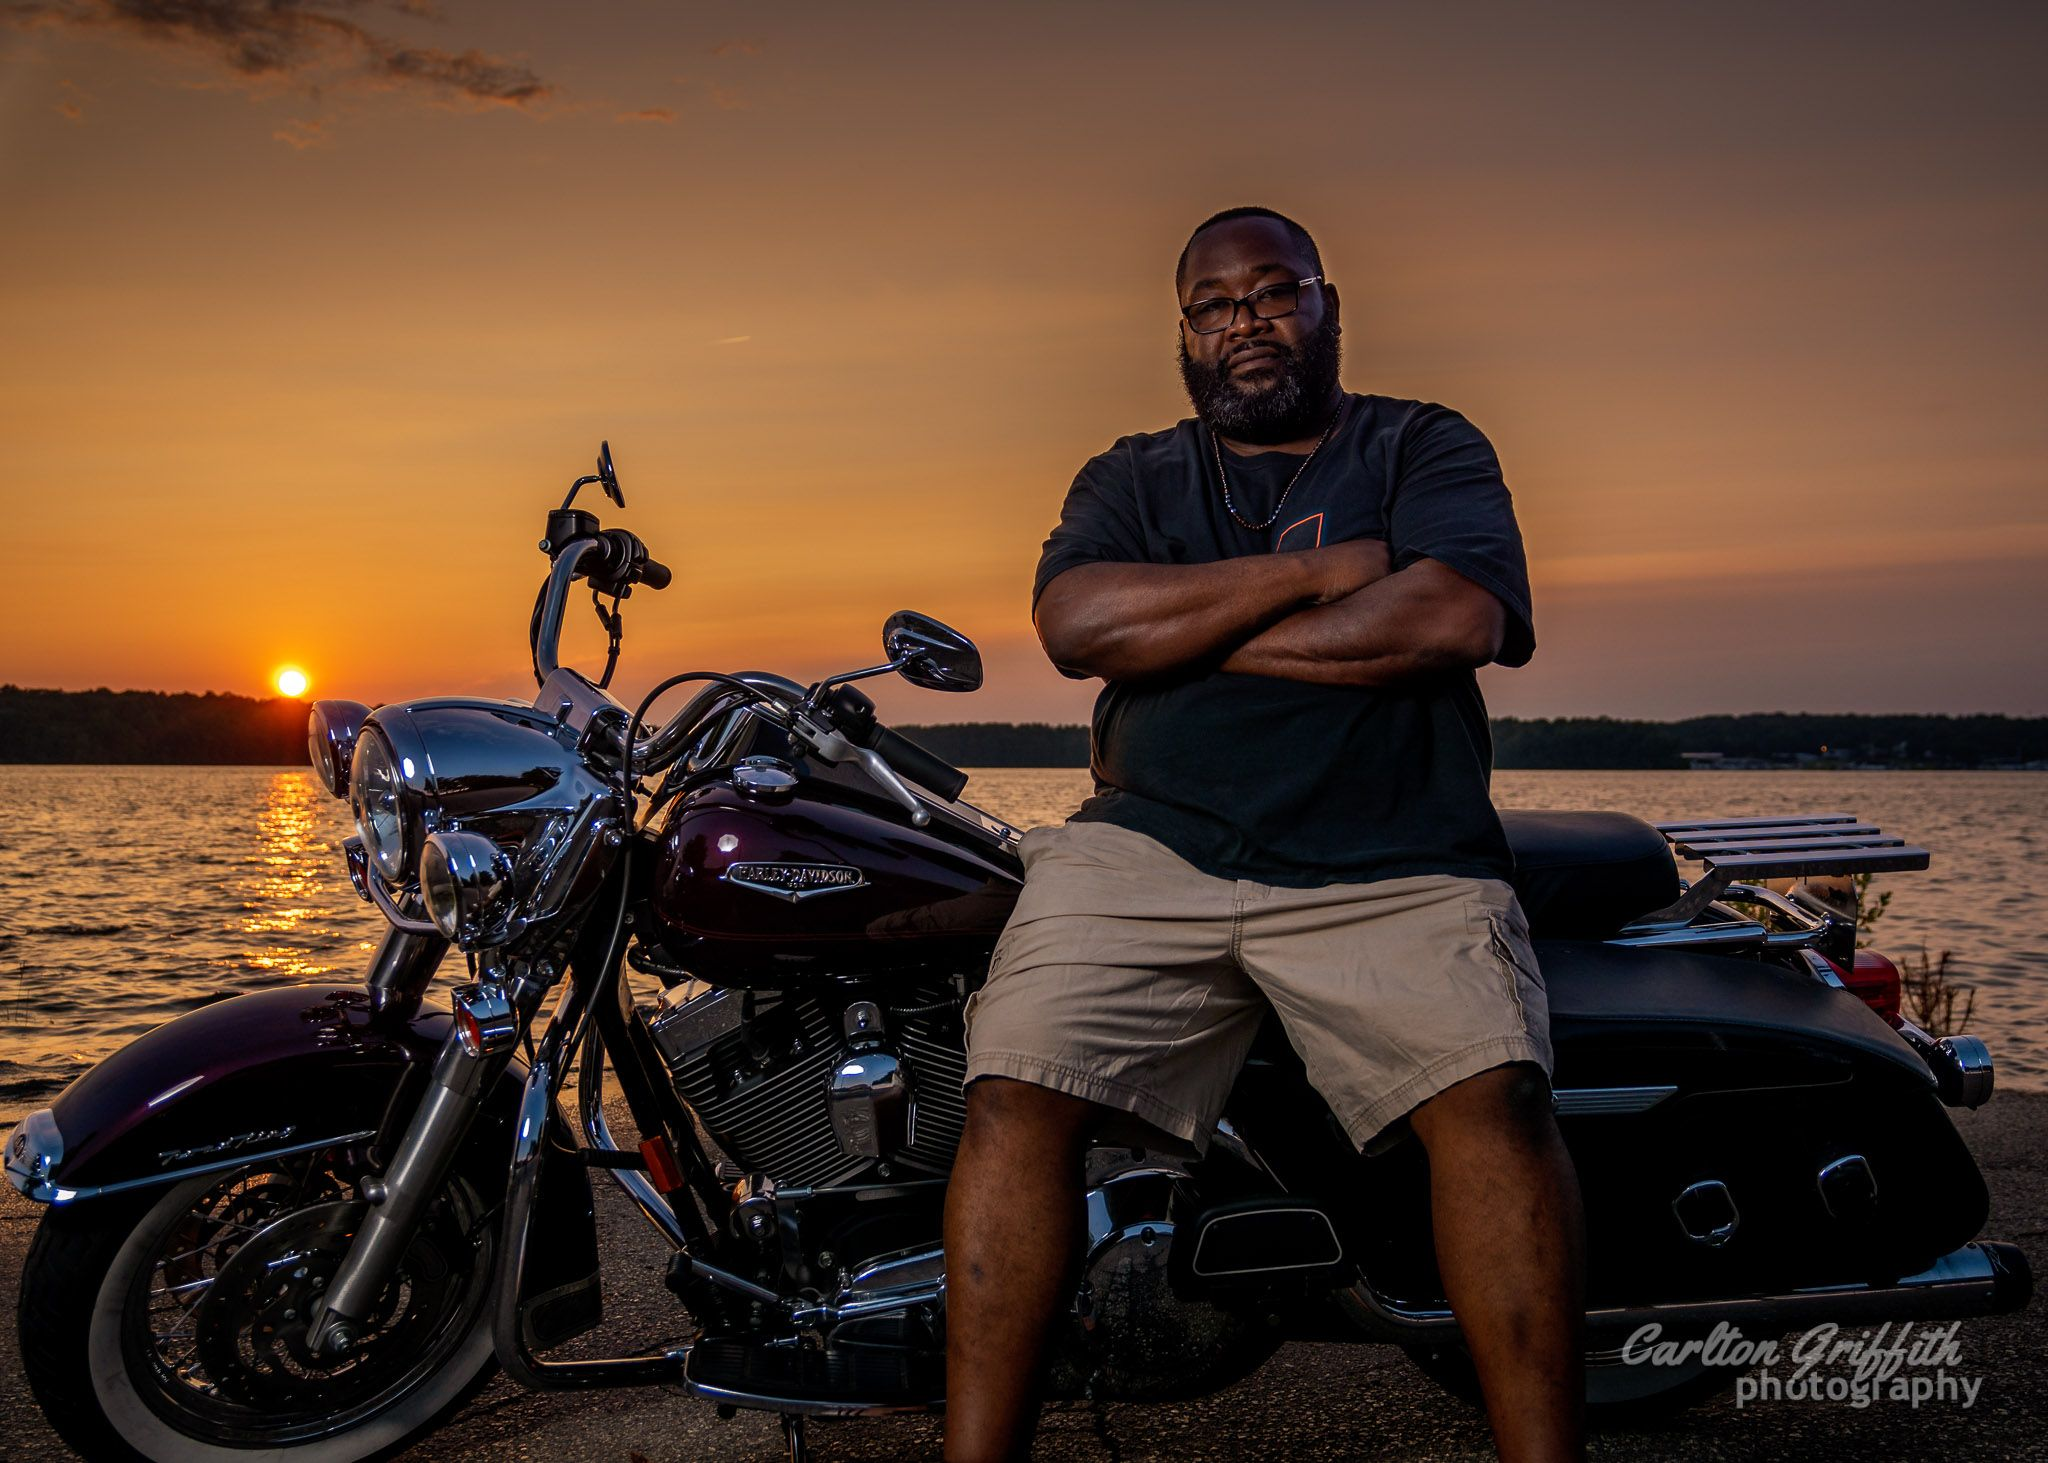 Man on motorcycle at sunset